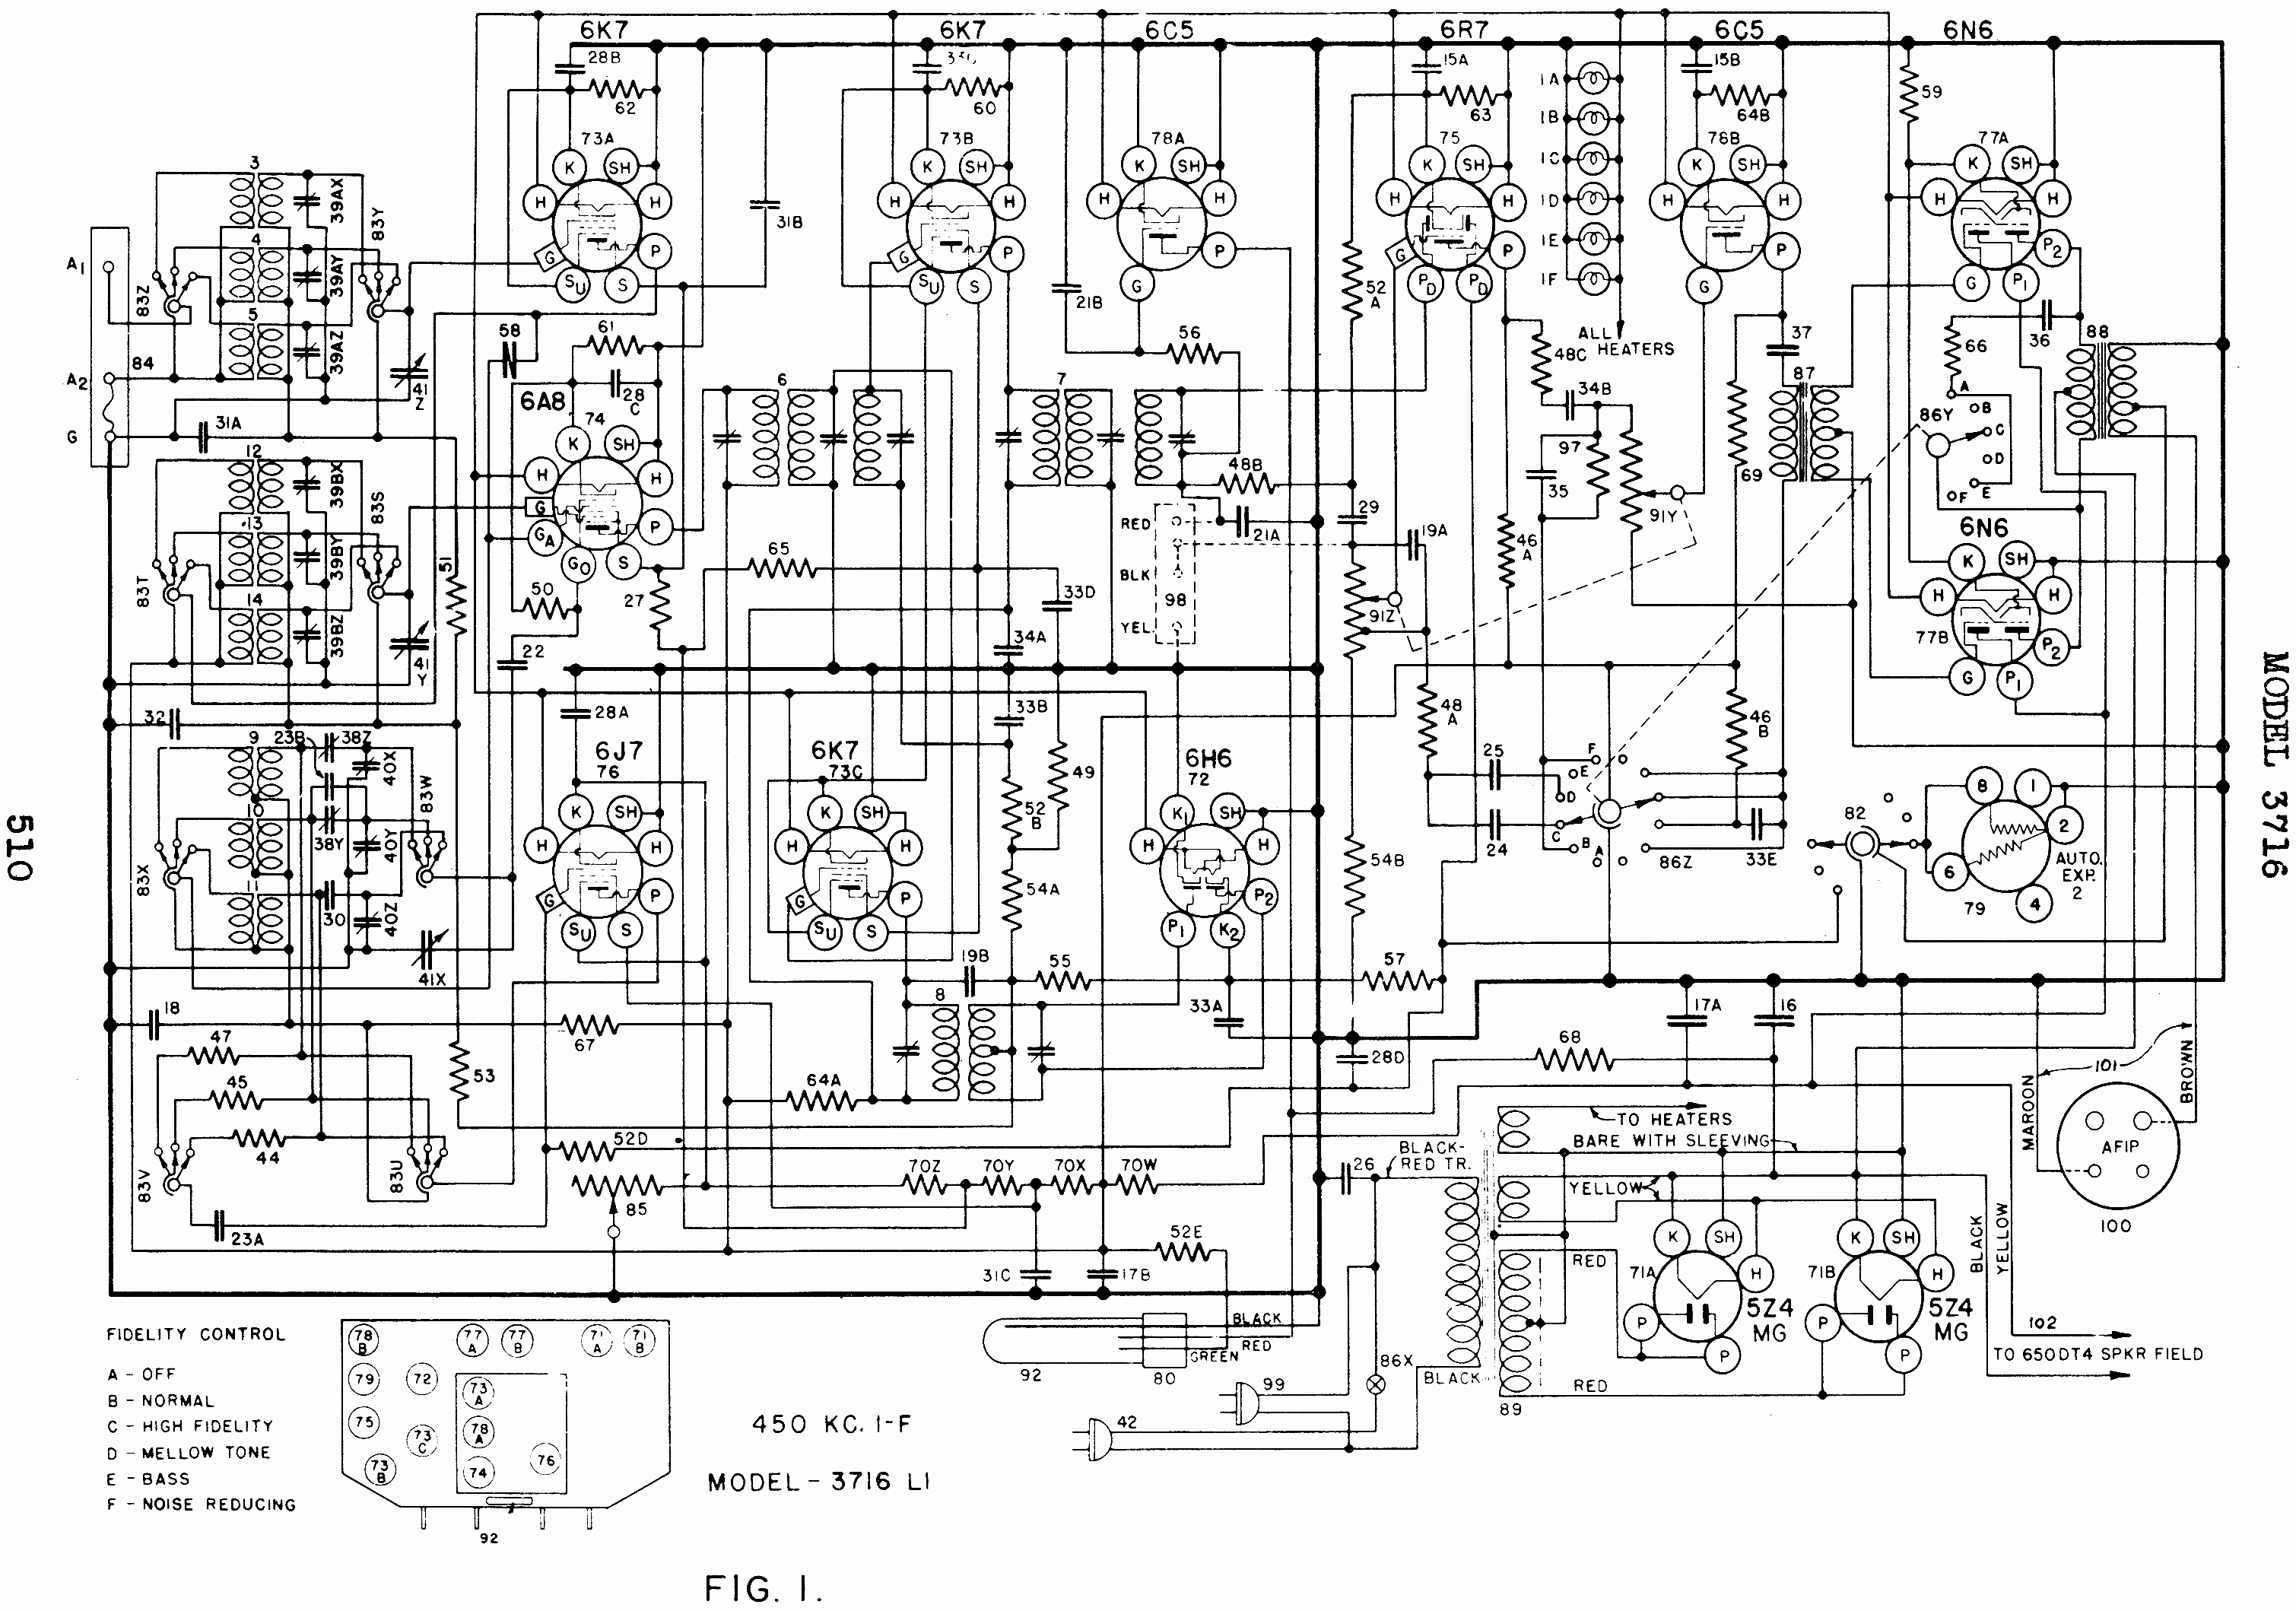 Here is the schematic of the Crosley WLW